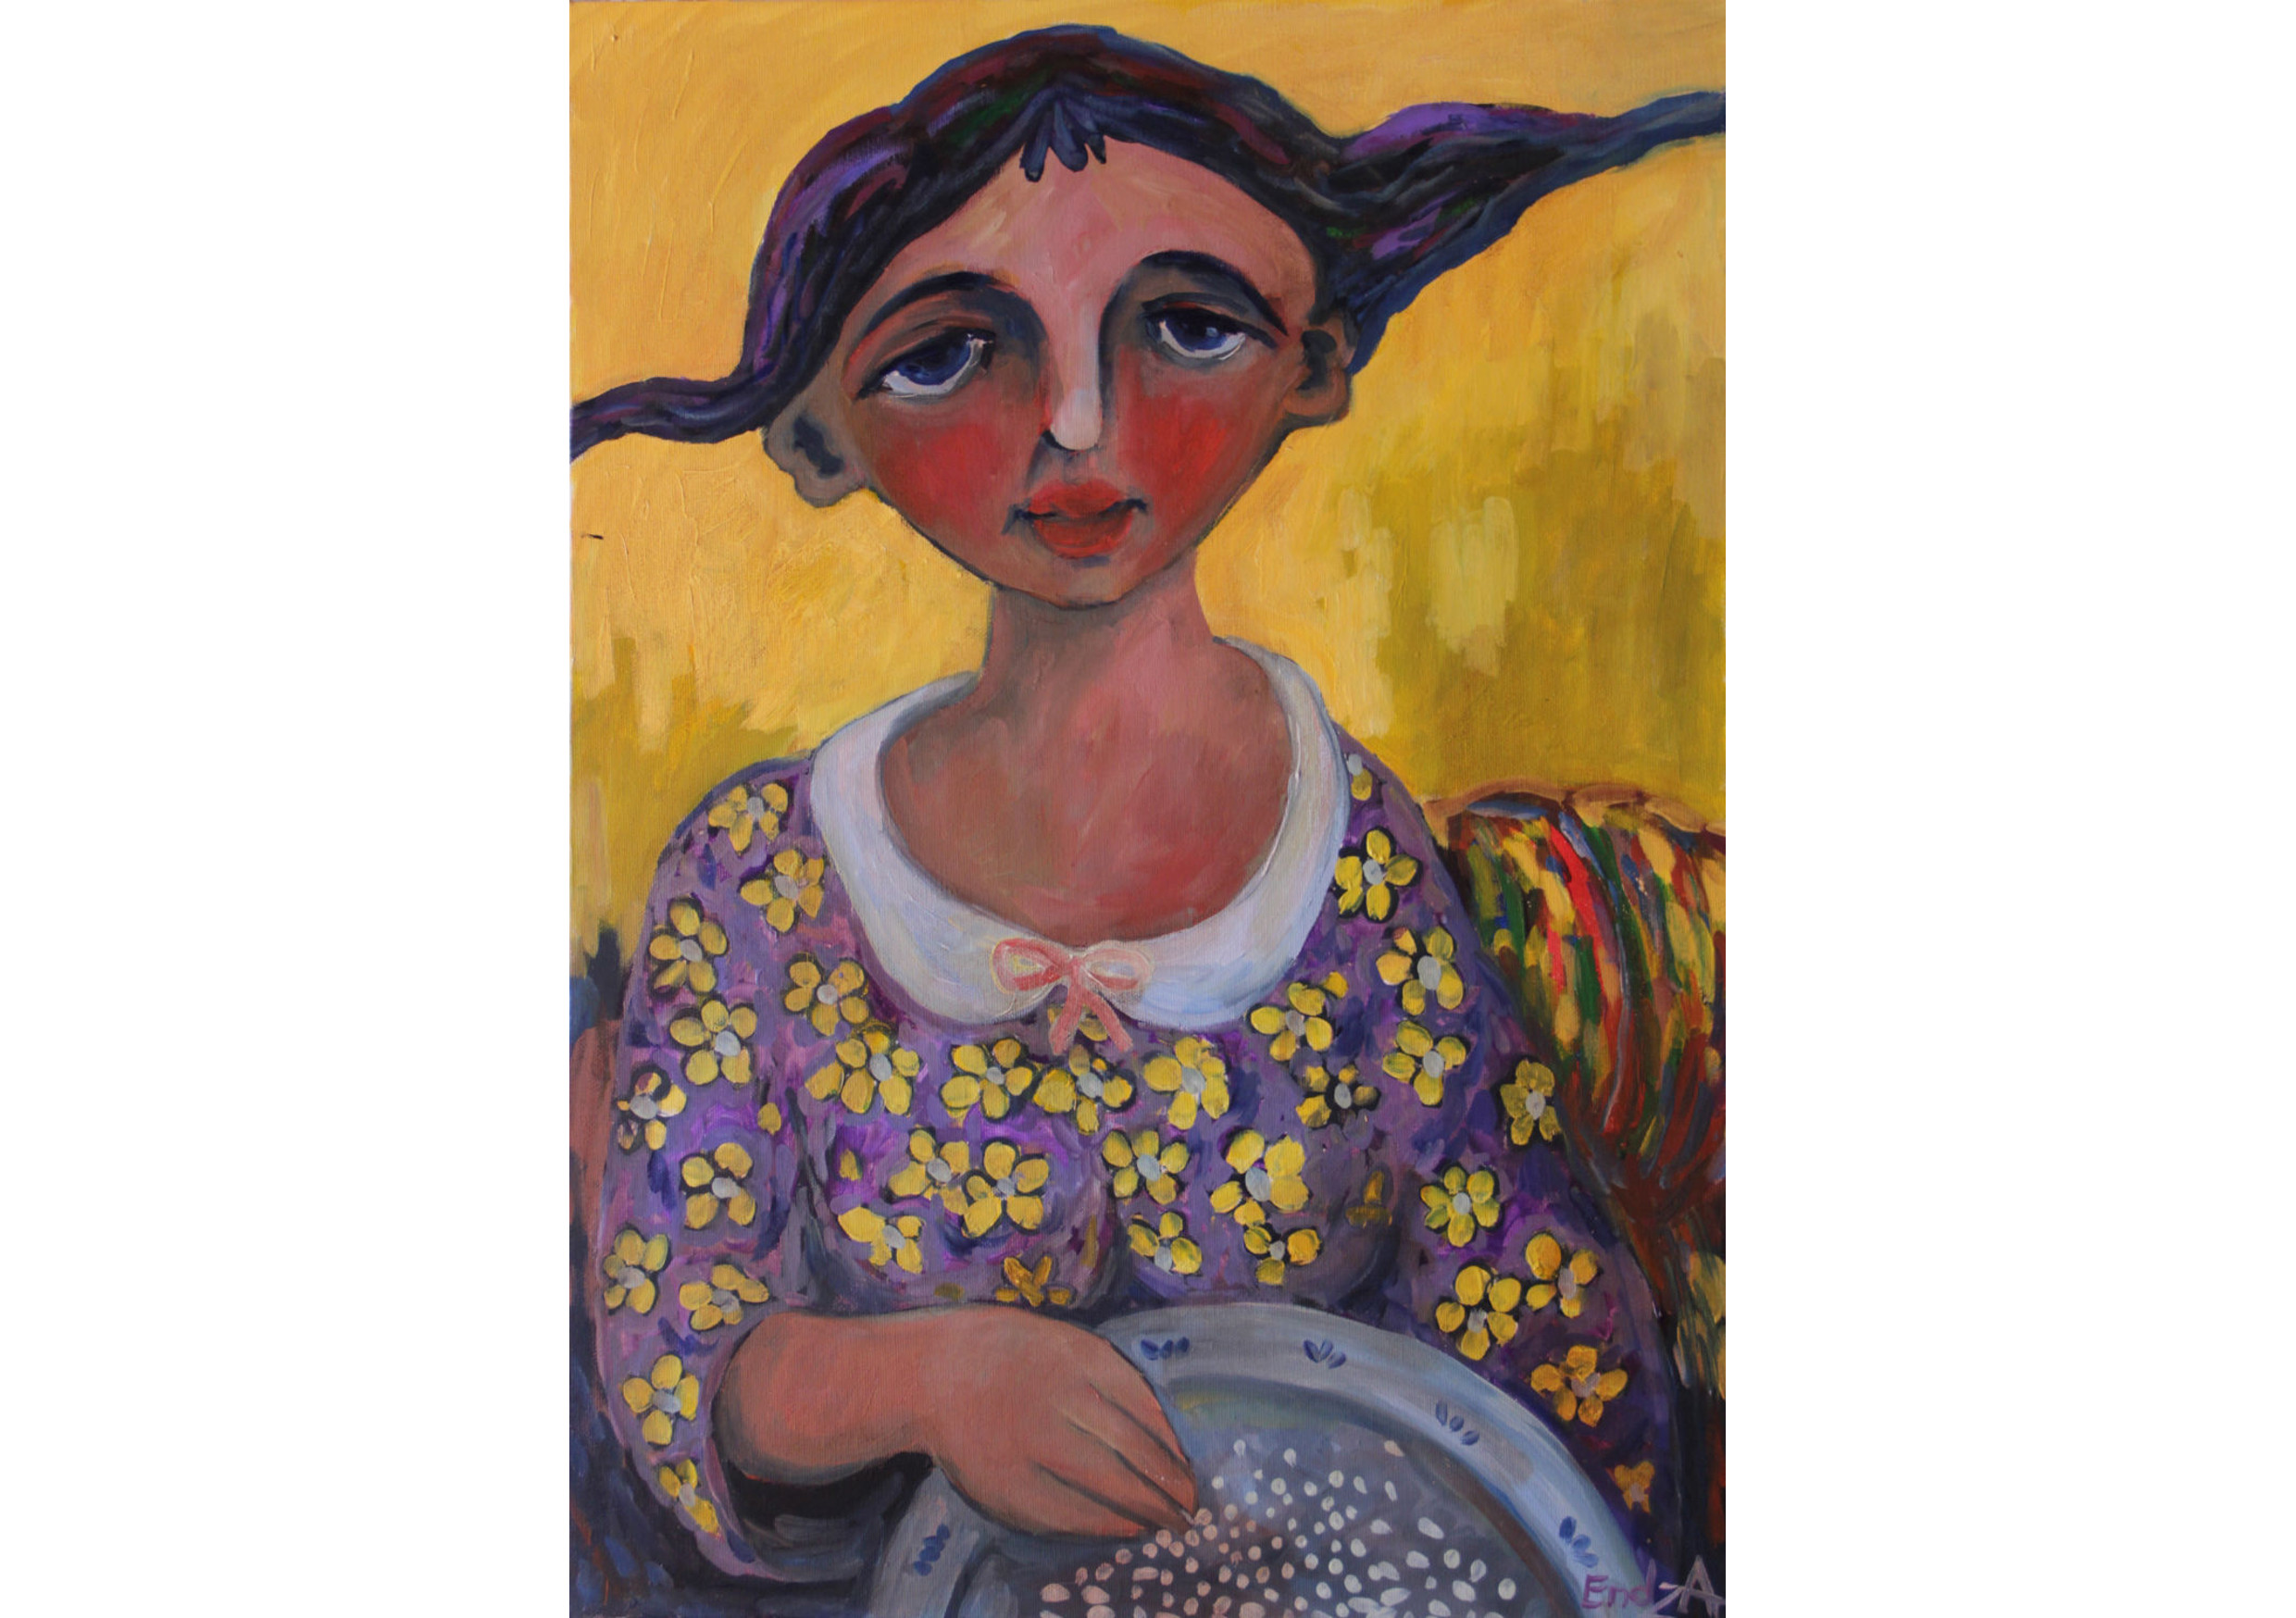 Rice cleaning girl, Oil on canvas, 50 x 70 cm